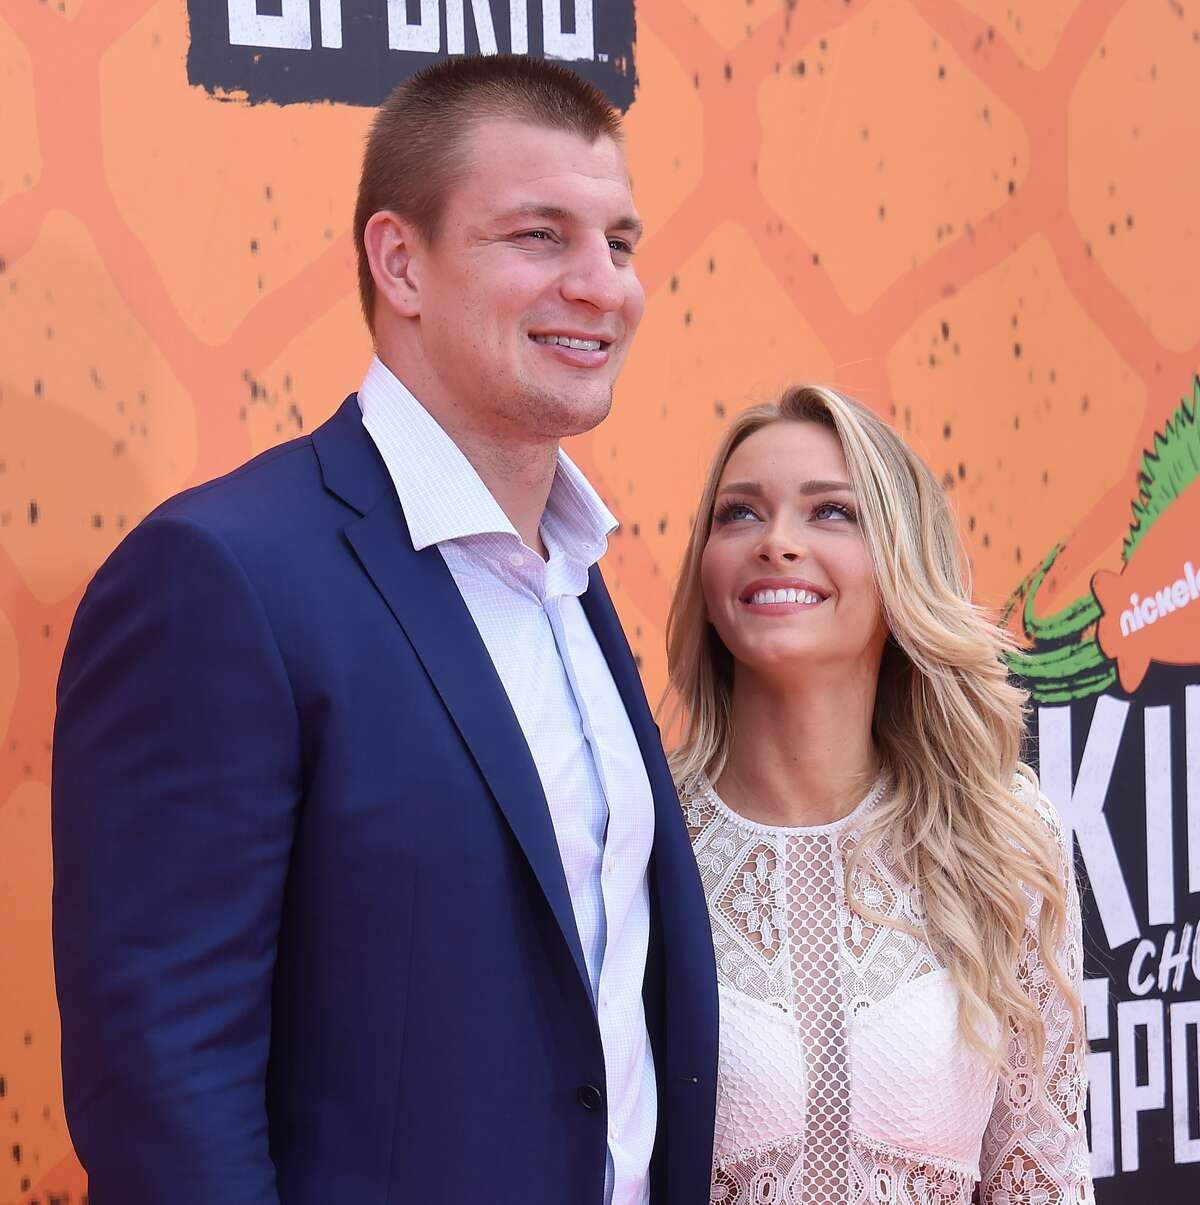 NFL player Rob Gronkowski and Camille Kostek arrive at Nickelodeon Kids' Choice Sports Awards 2016 at UCLA's Pauley Pavilion on July 14, 2016 in Westwood, California.